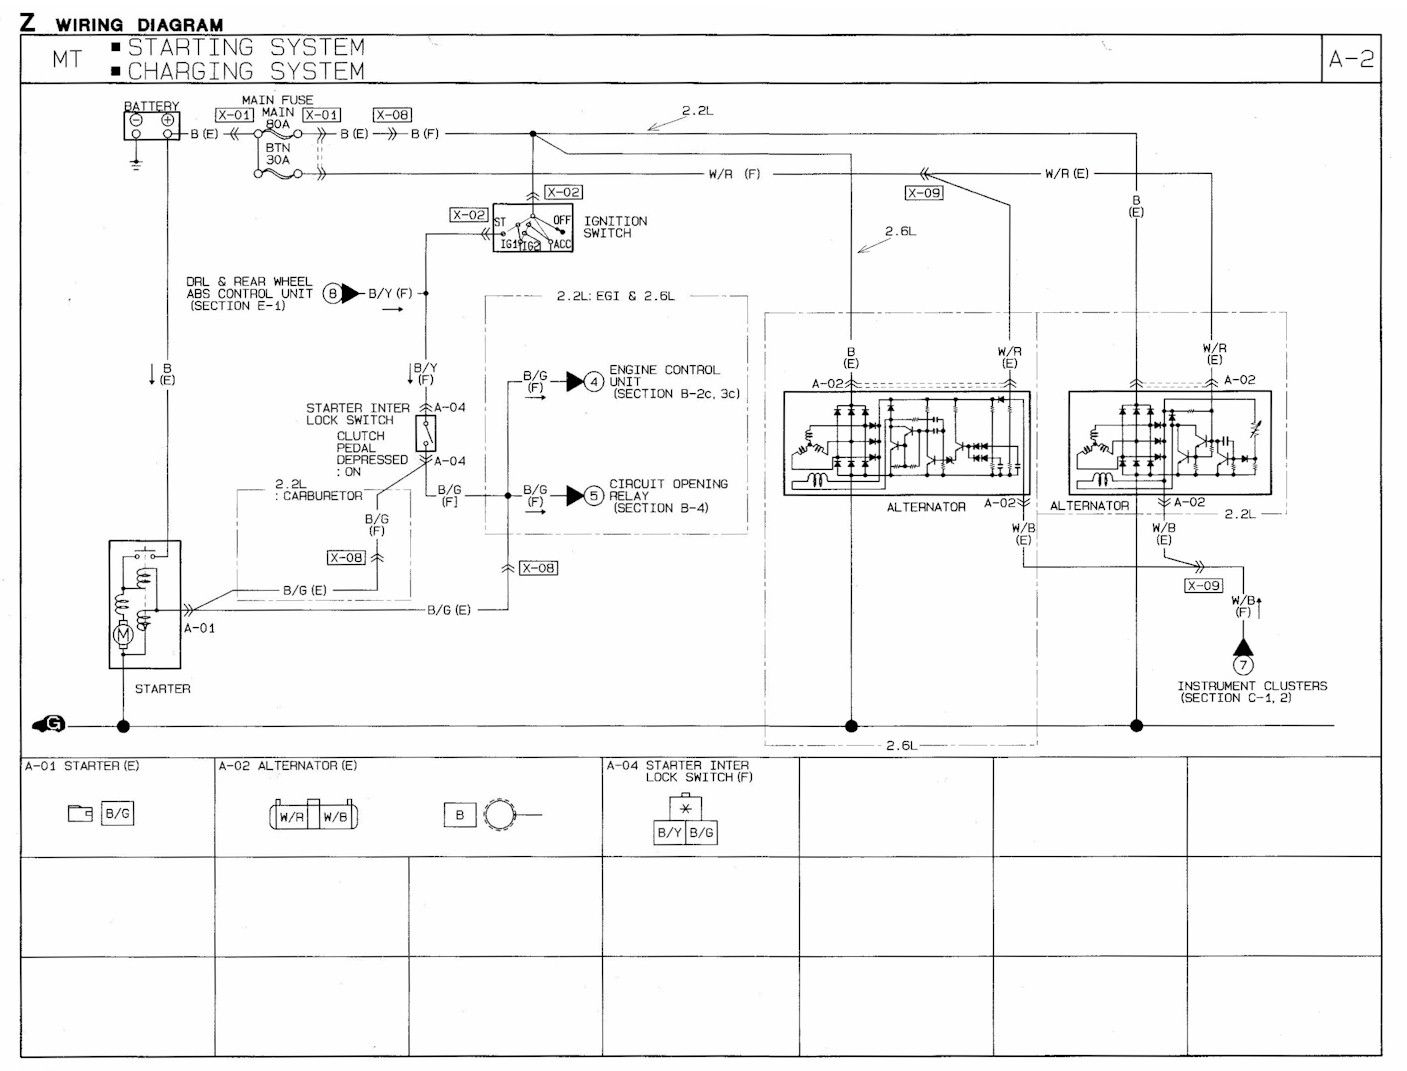 1993 Mazda B2600 Wiring Diagram 2009 Toyota Corolla Audio Best Library 1991 B2600i Diagrams For Professional U2022 Rh Bestbreweries Co B2200